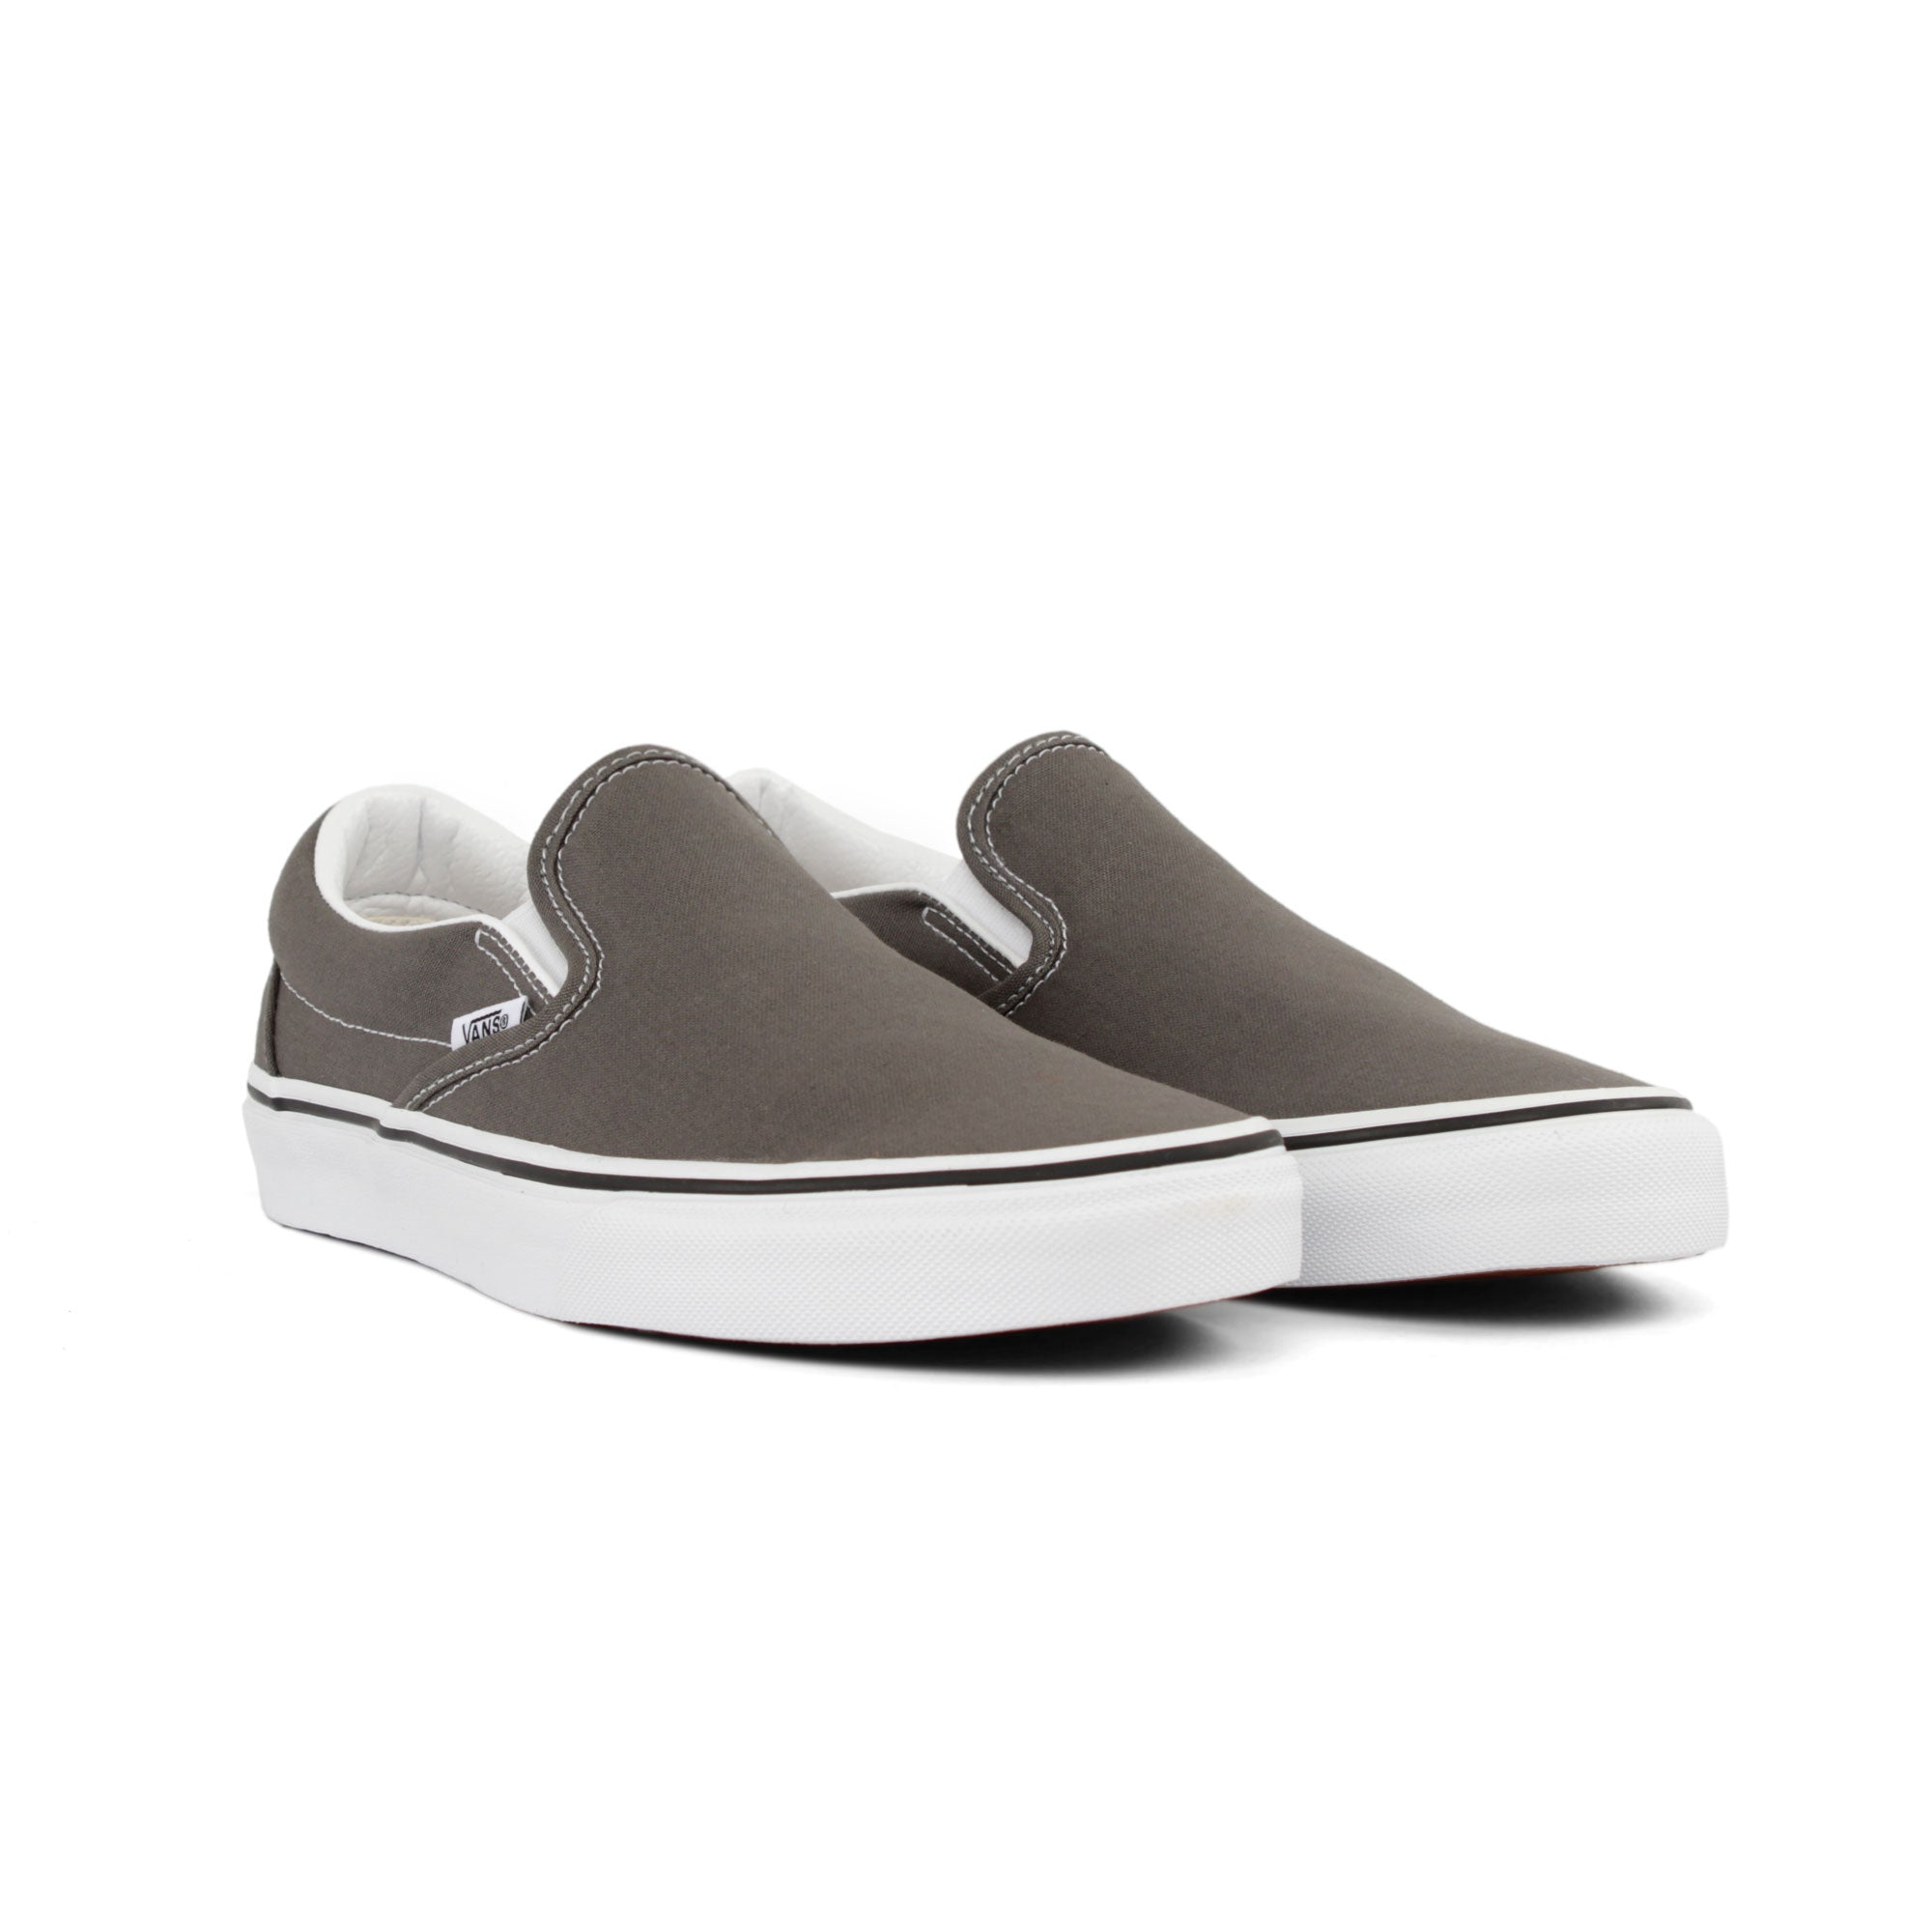 Vans Classic Slip-On Product Photo #2